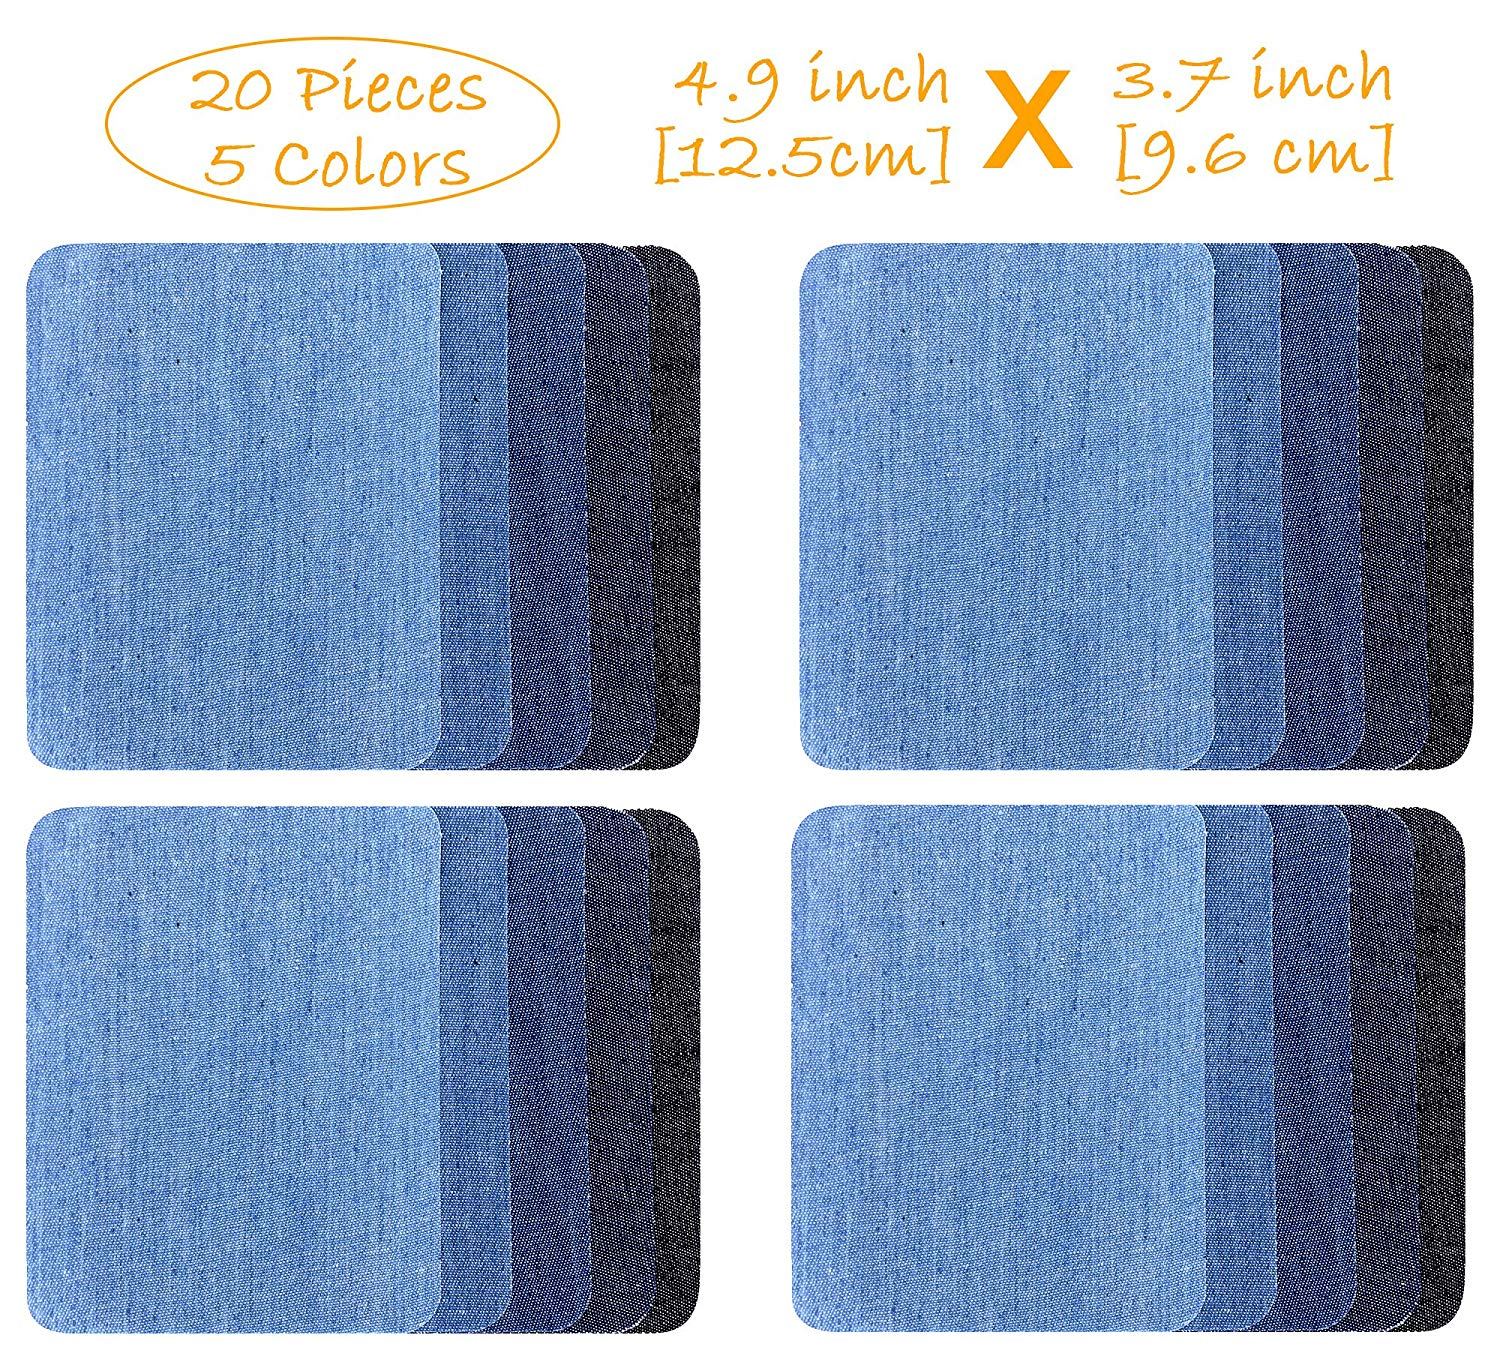 Iron-on Patches, 20-Pack Denim Cotton DIY Decorative Patch and Jean Repair Patches, 4.9 x 3.7 inch, 5 Colors (20-Pack-Comb2)